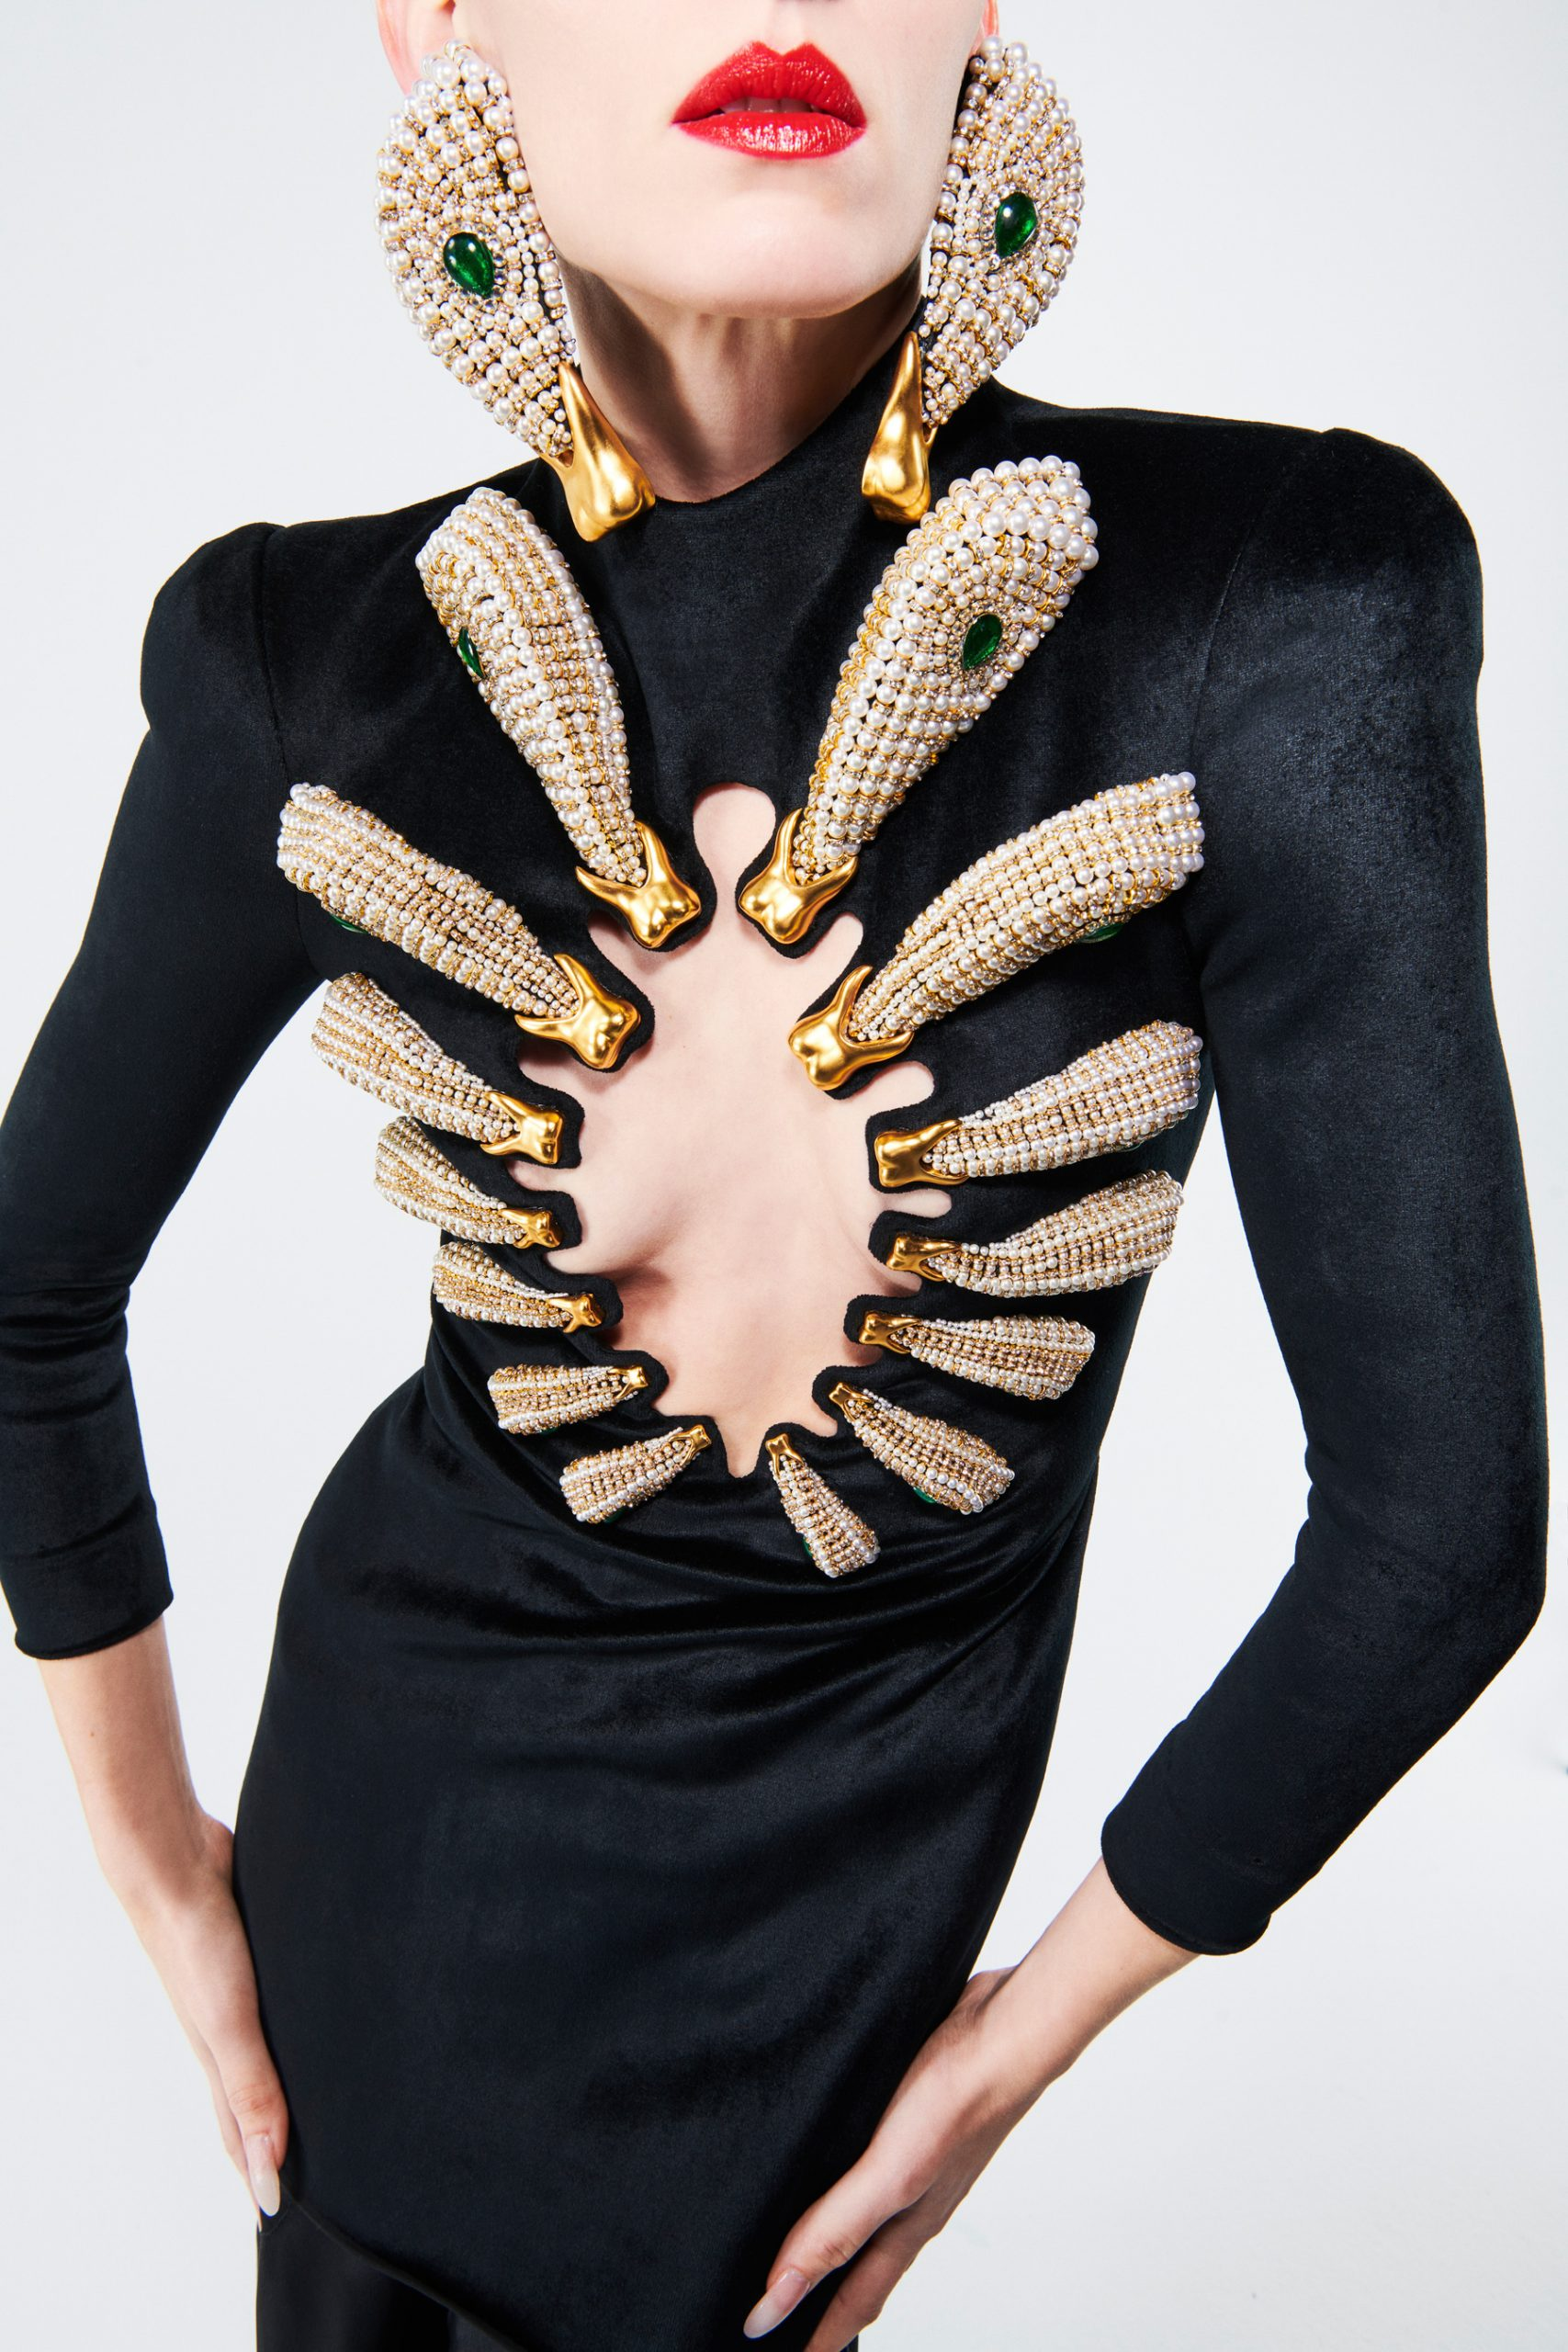 Oversized Jewelry Spring 2021 Couture Fashion Trend